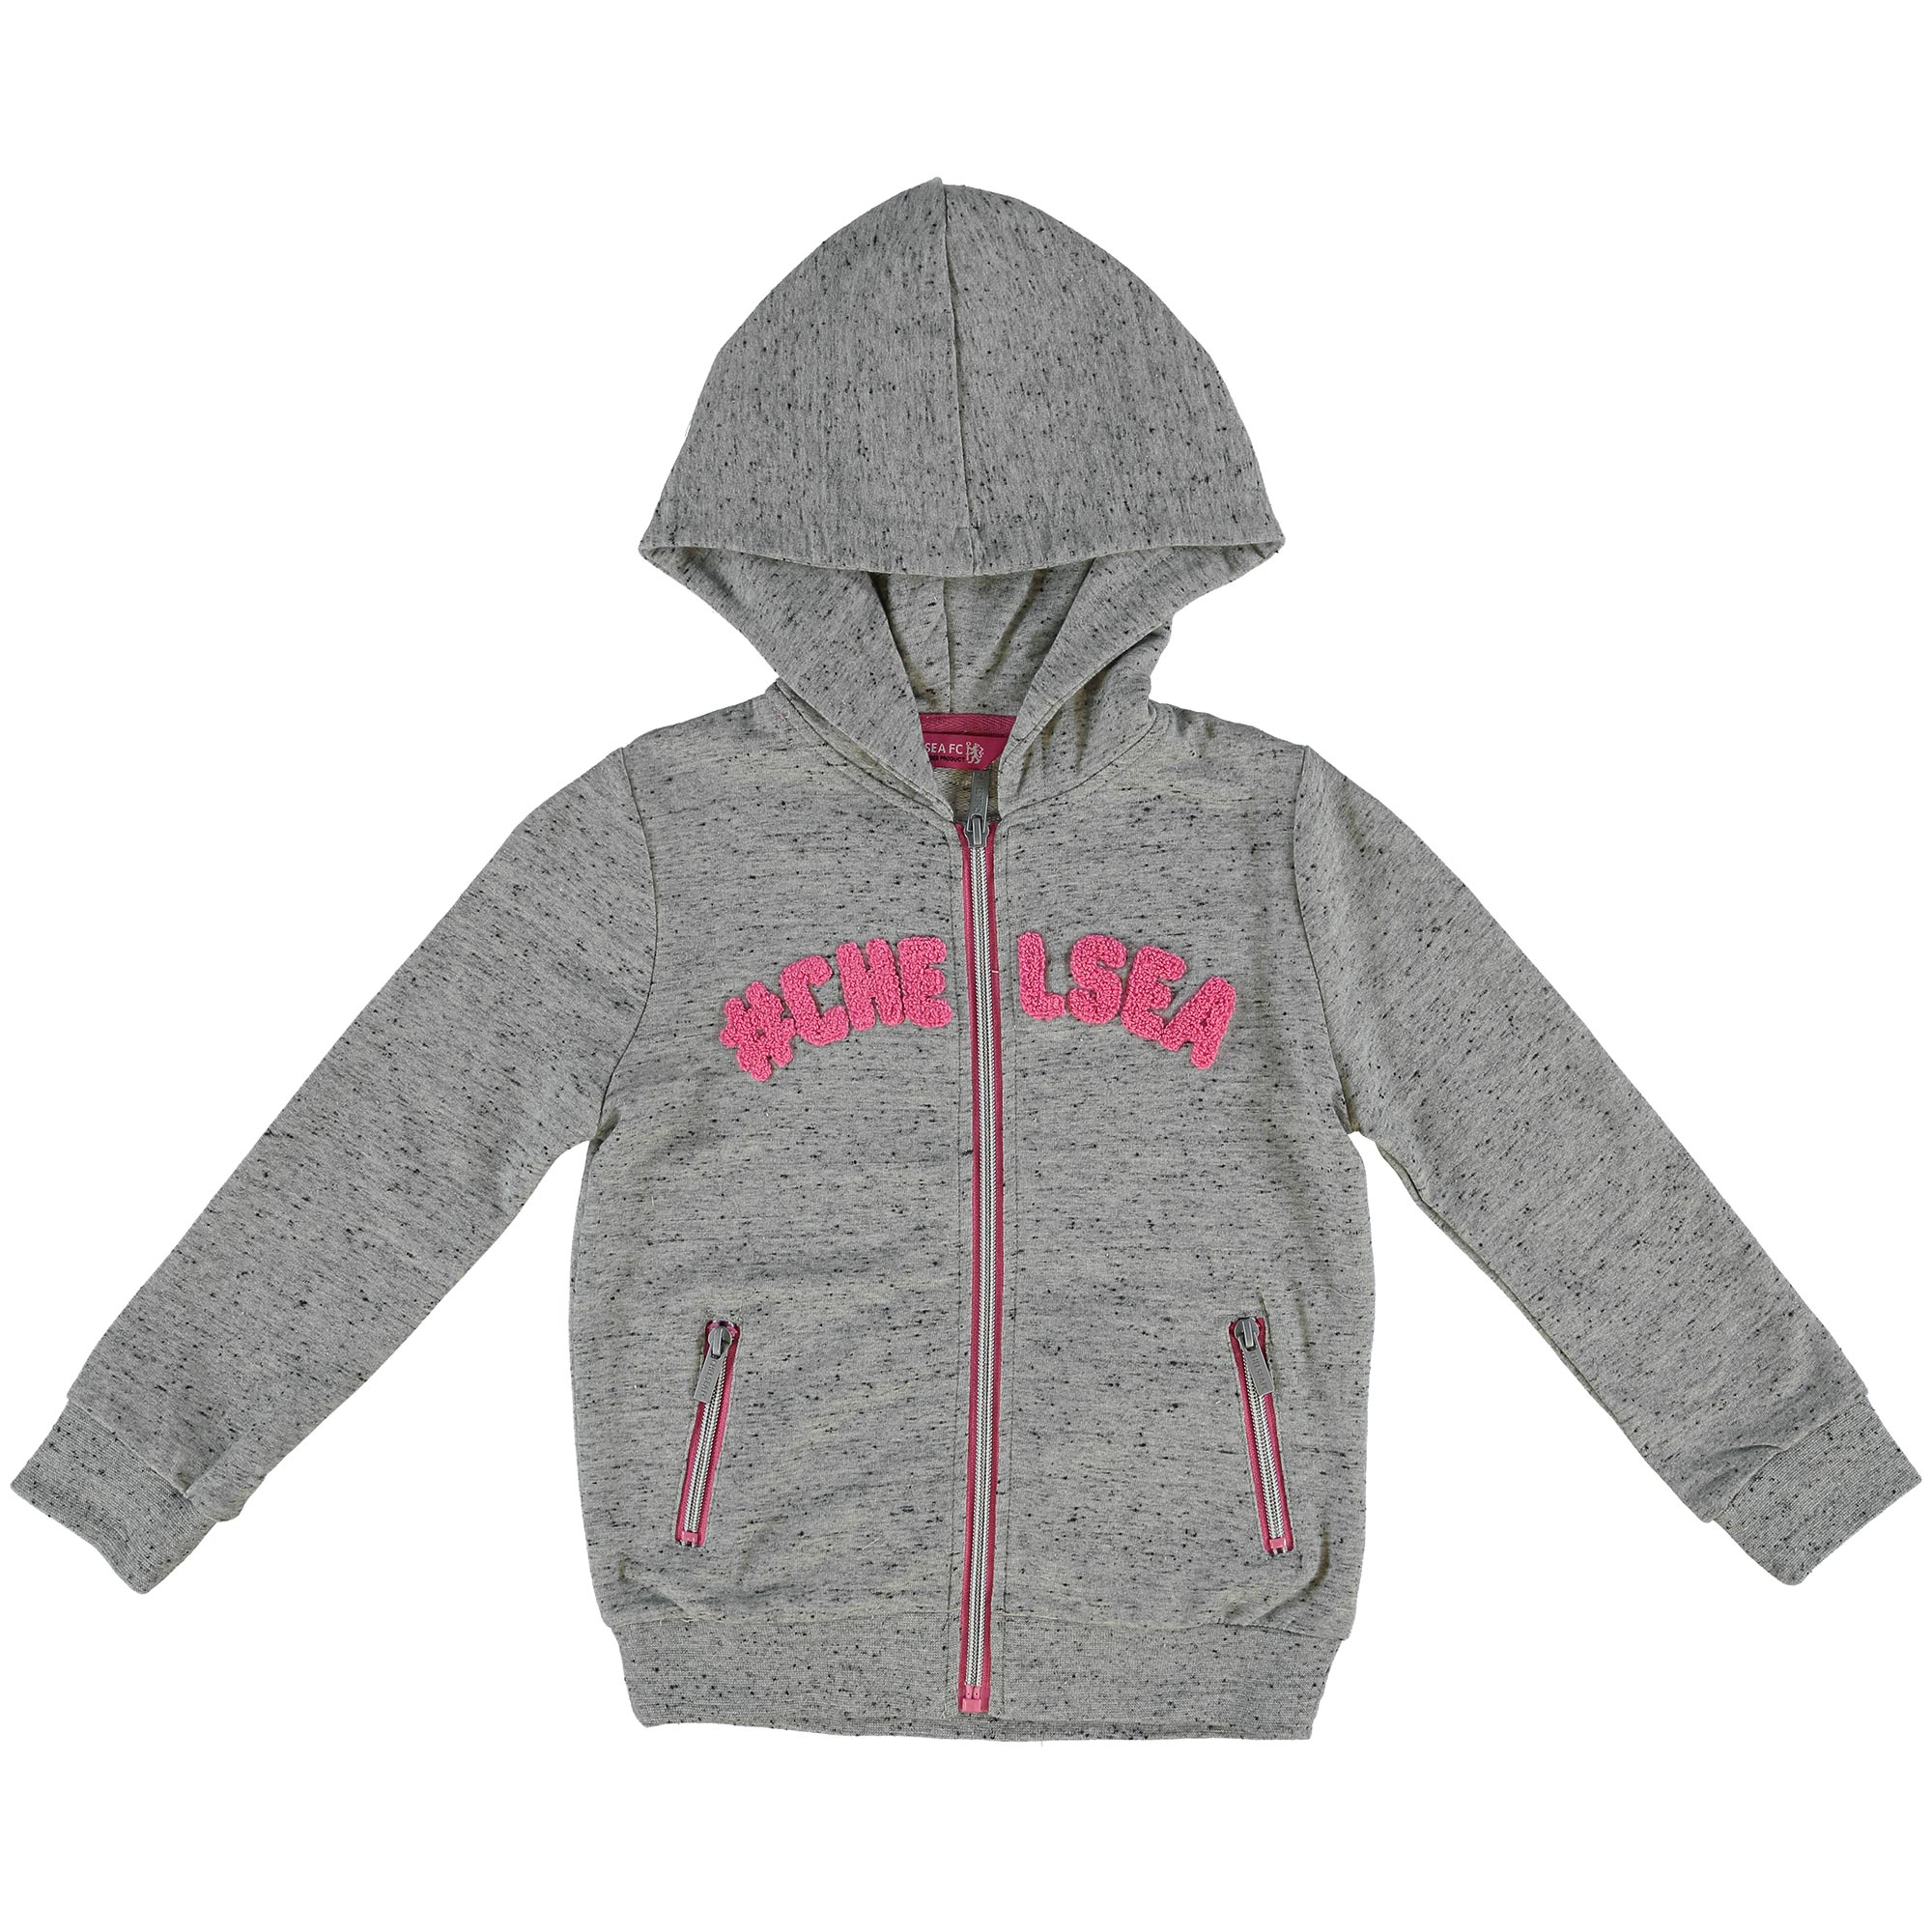 Chelsea Hashtag Zip Through Hoodie - Grey Speckle Marl - Girls